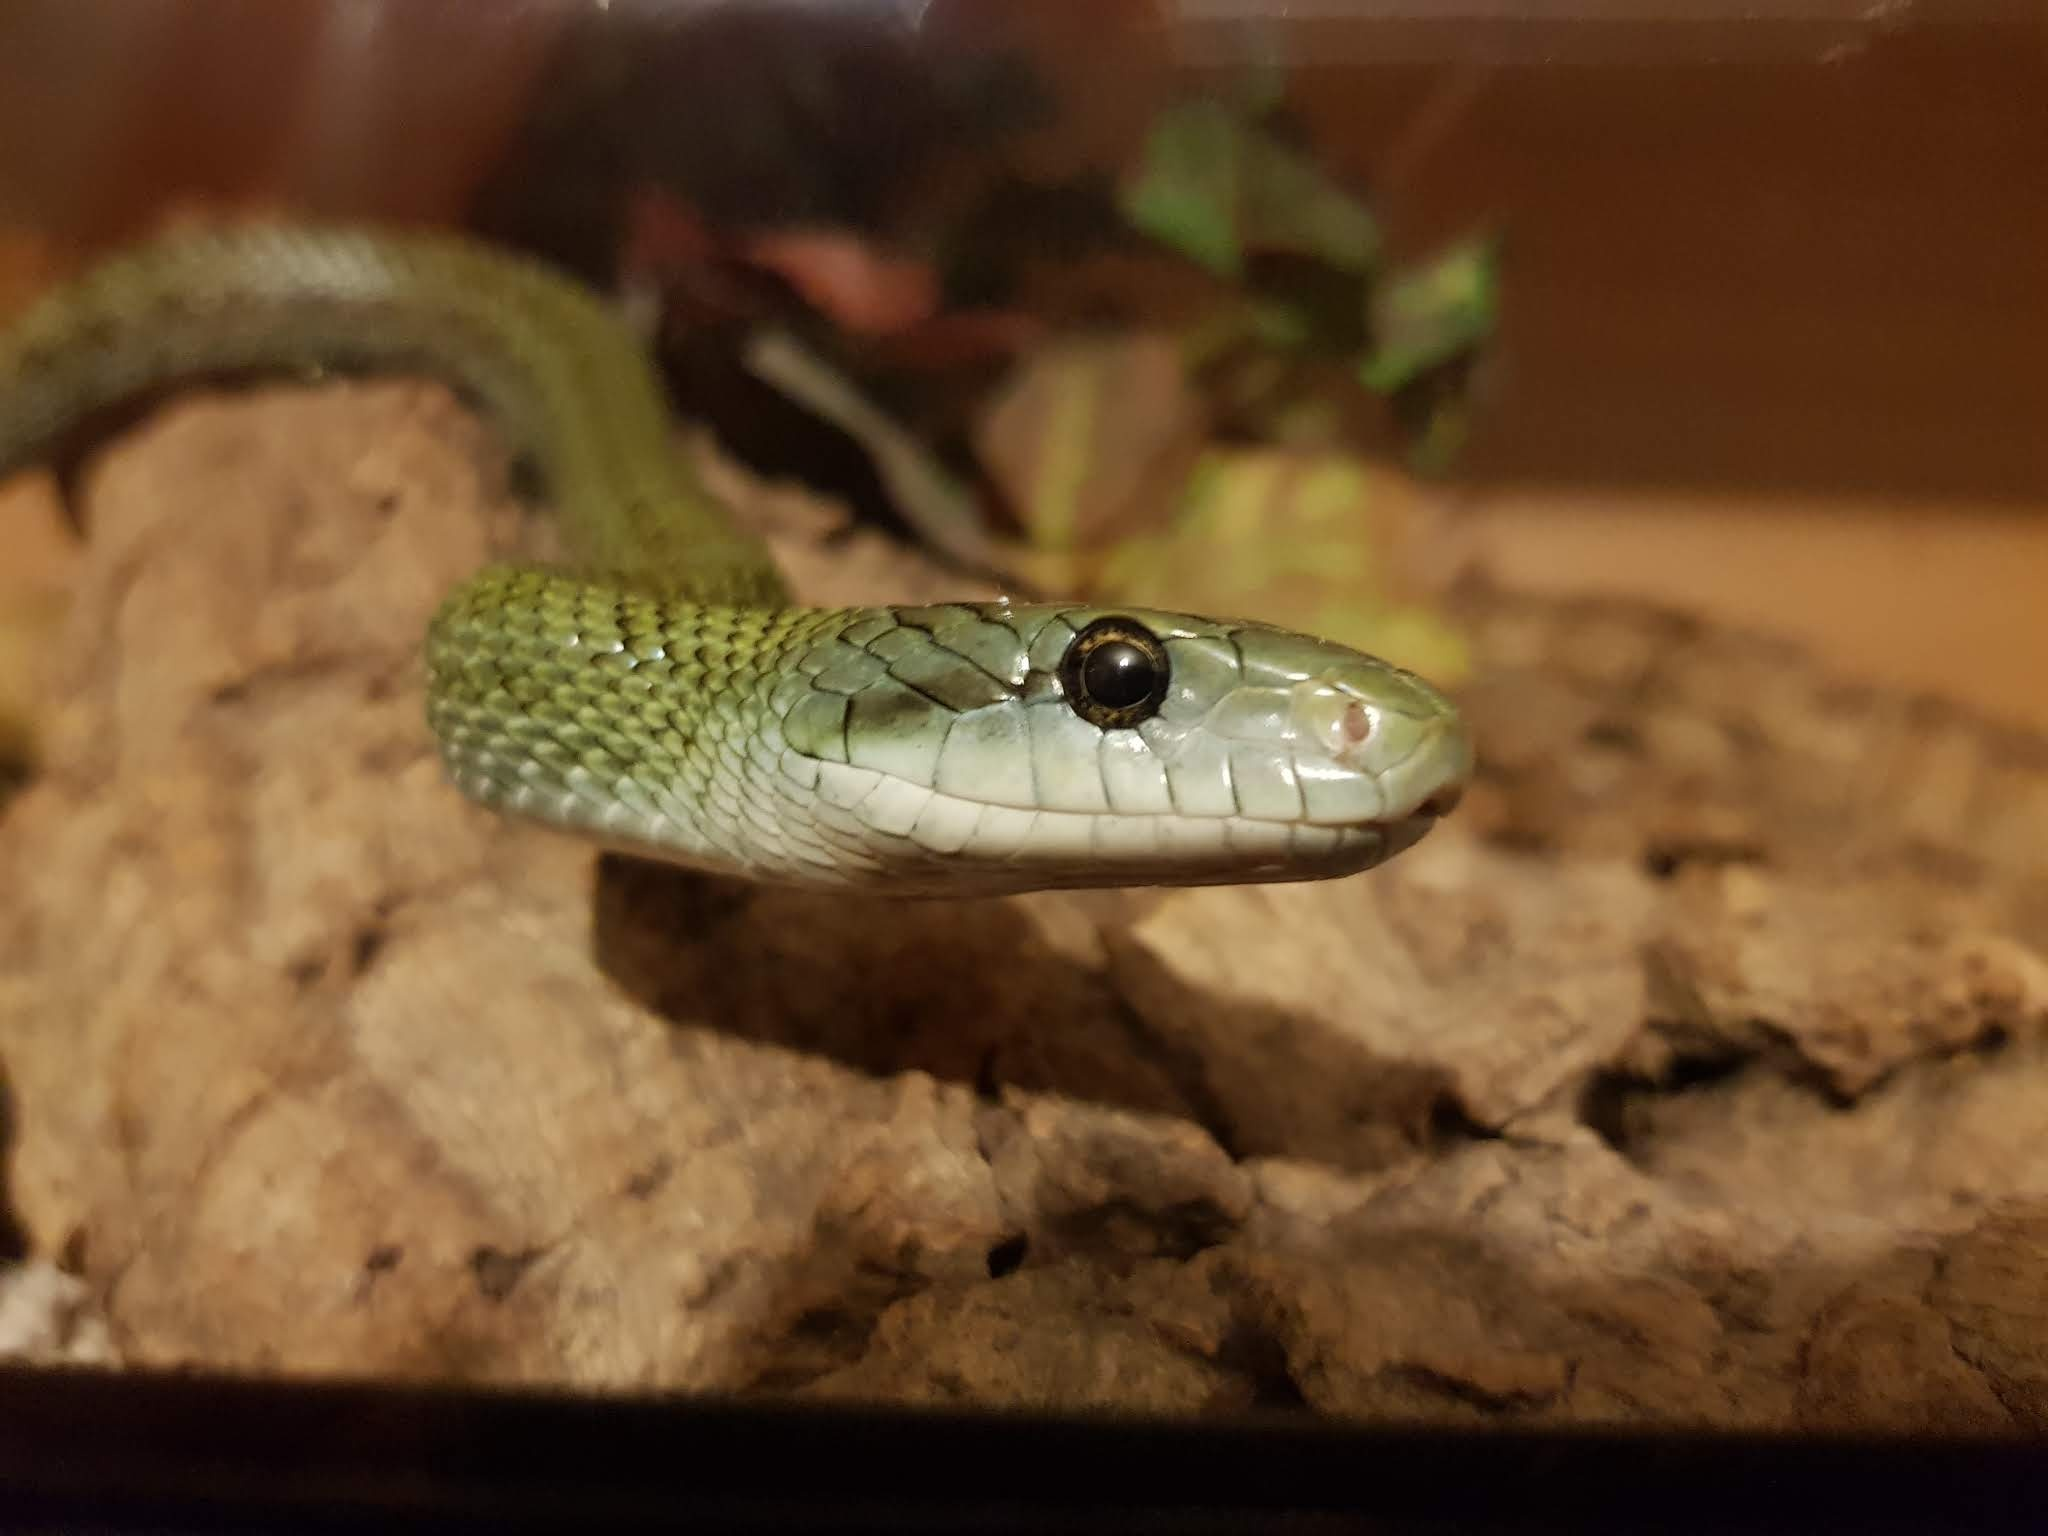 Should I get a green tree python for my daughter? - Quora